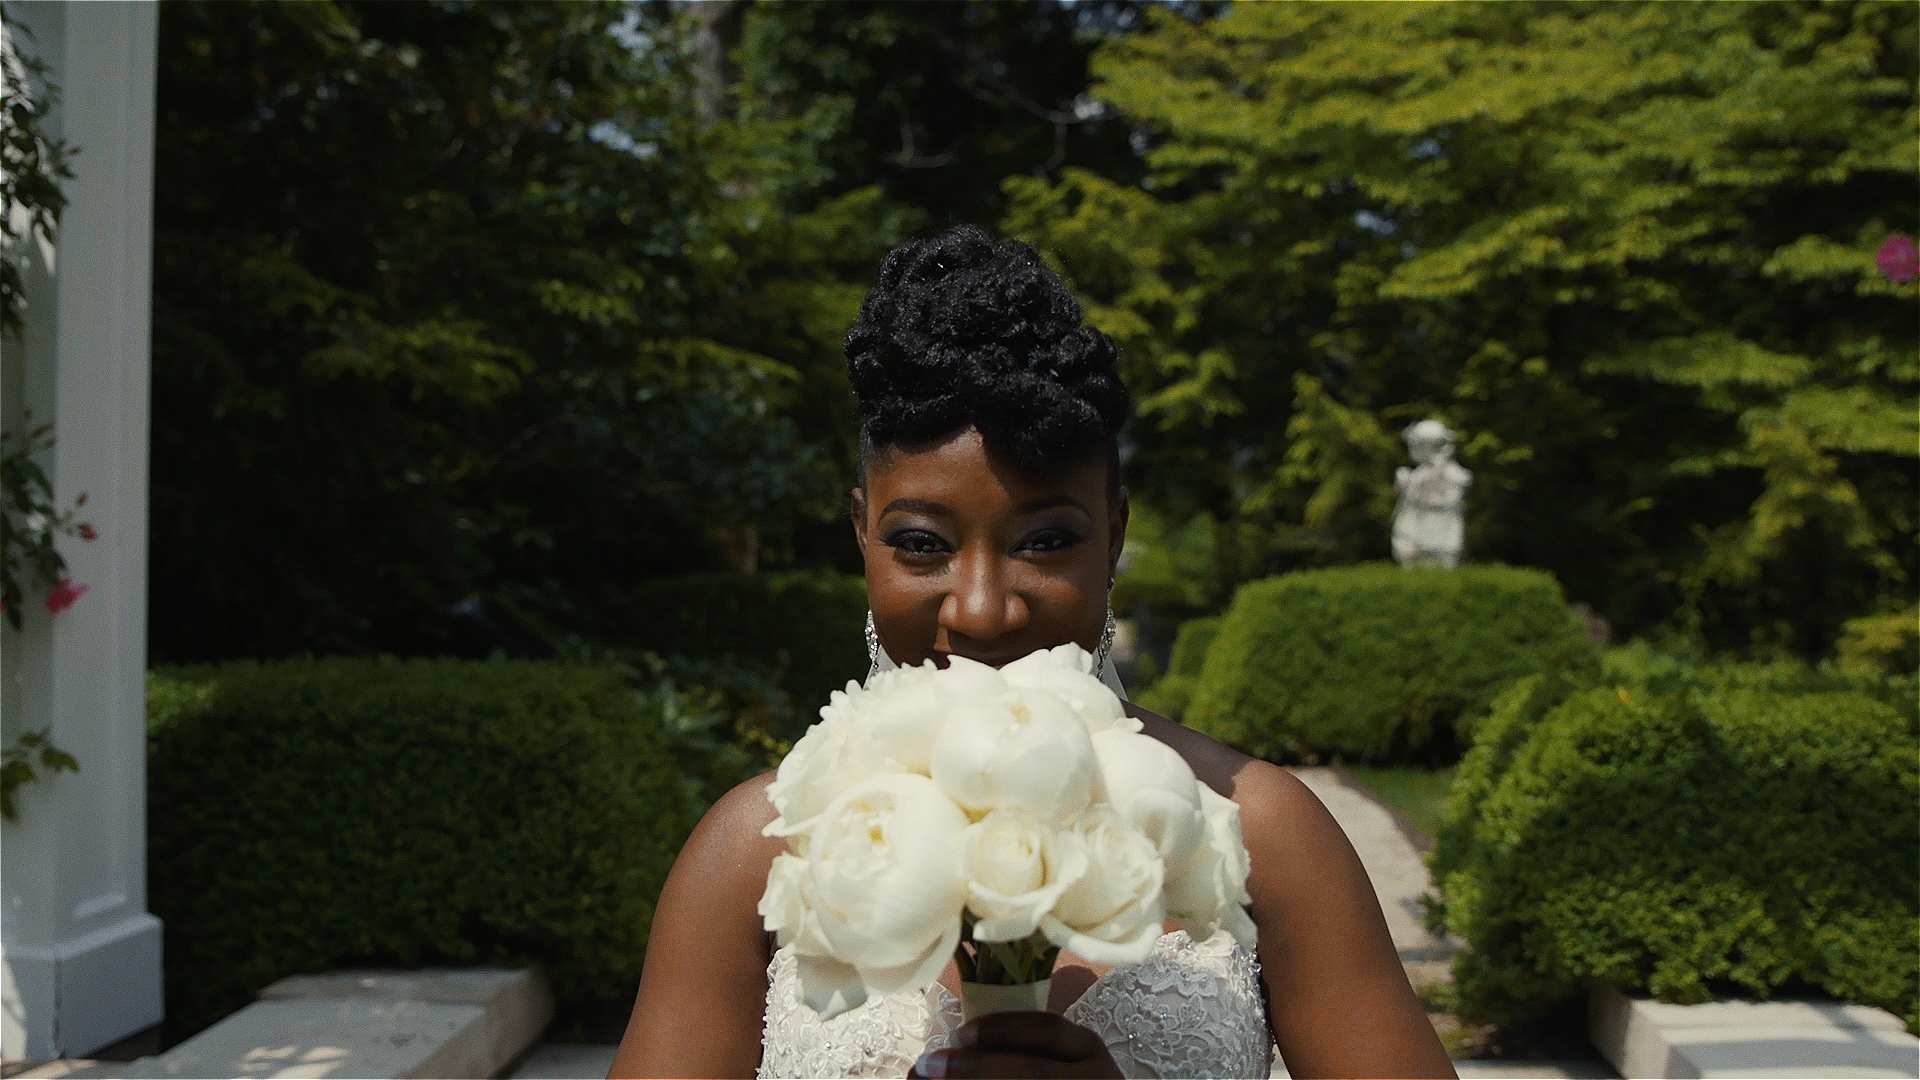 This shot was thought of on the fly, I had the Bride cover her face with her bouquet and proceed to slowly reveal her face, it came out great!